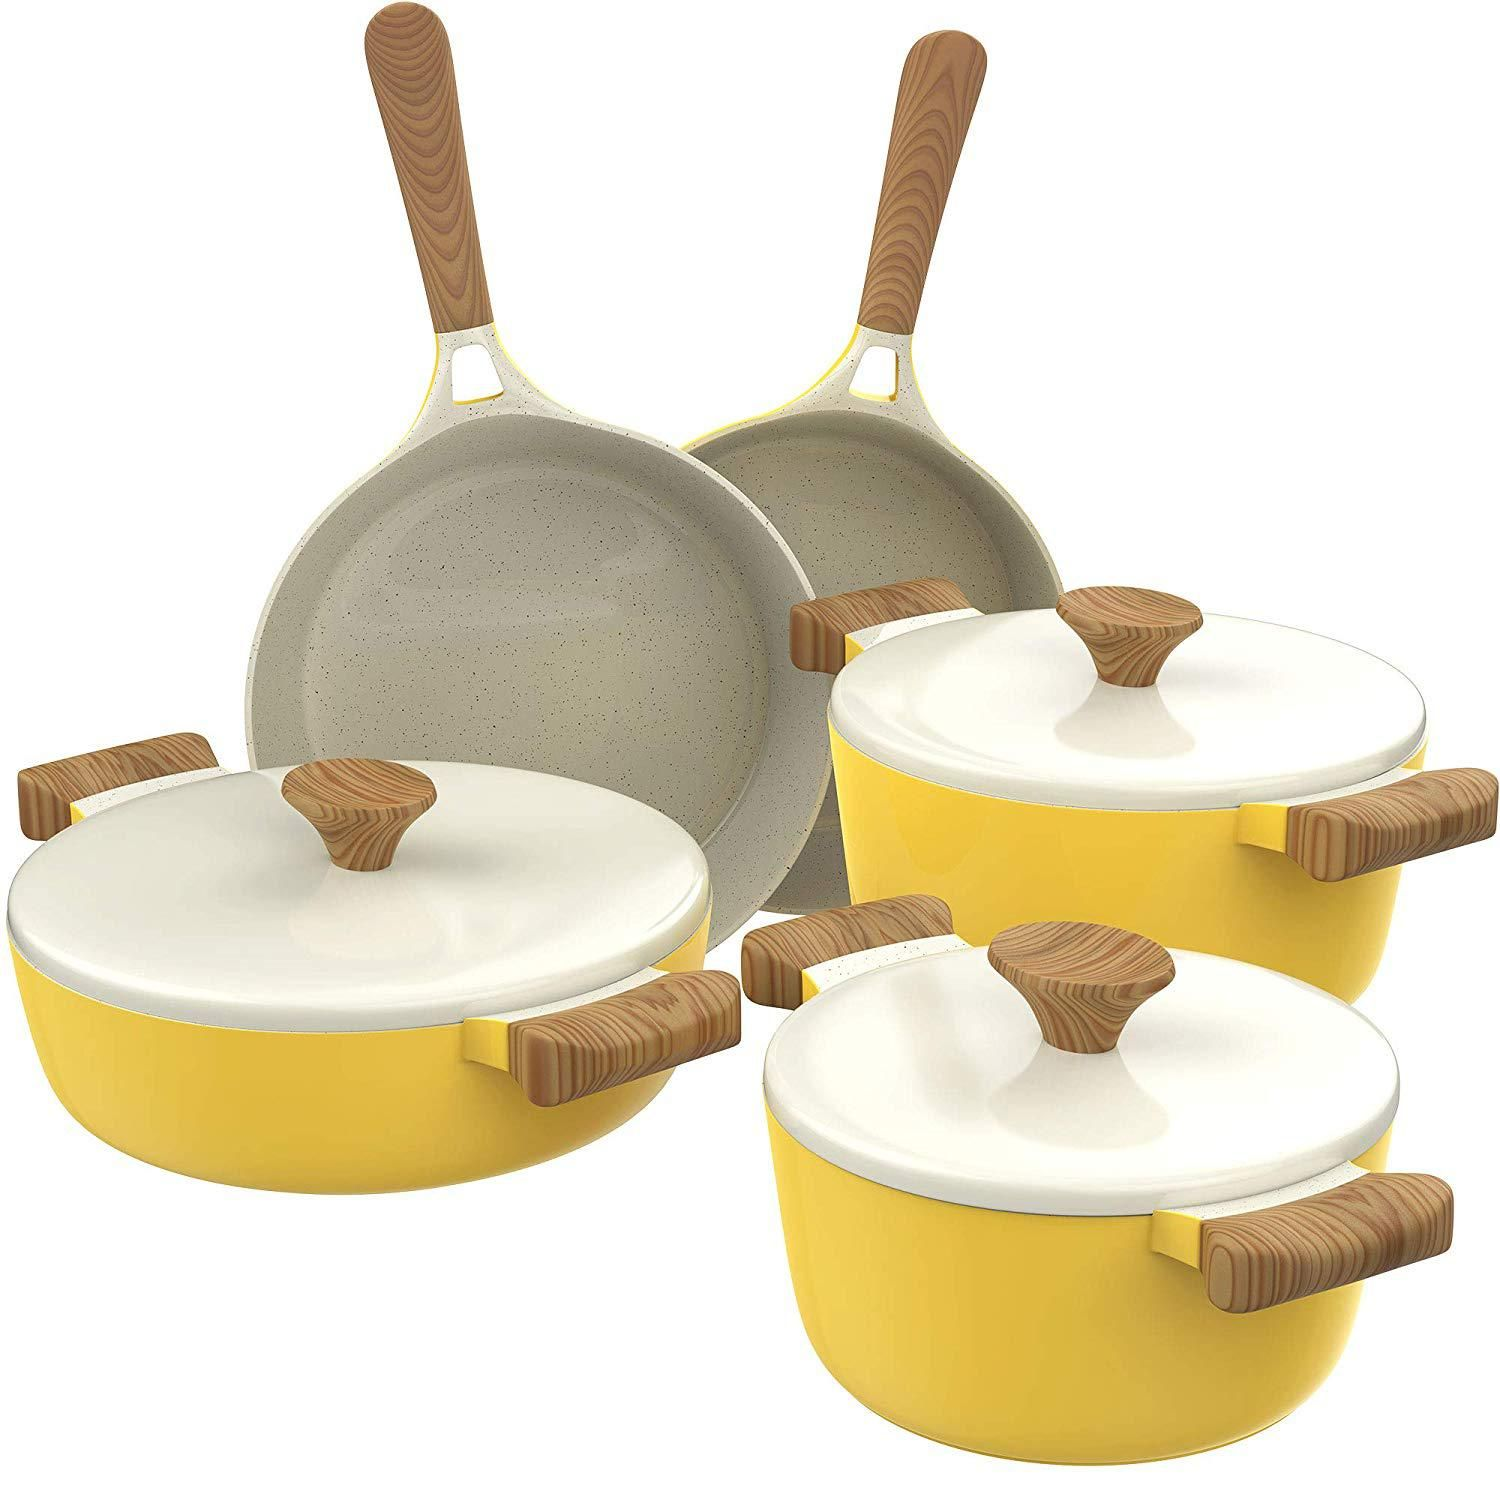 Homelabs Ceramic 8 Piece Cookware Set Compatible With Induction